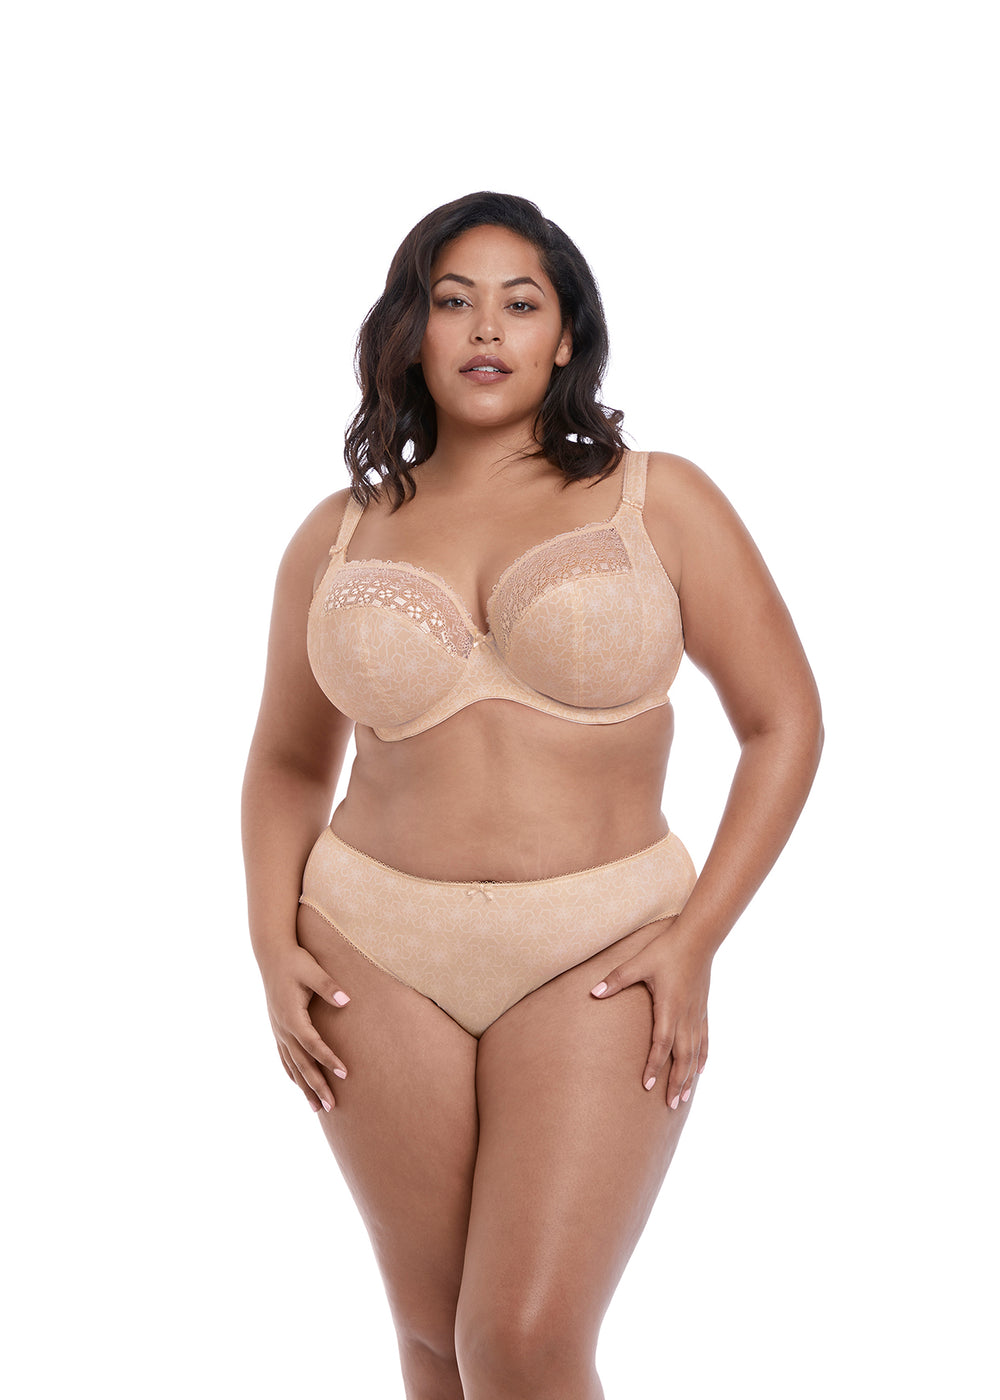 Kim UW Plunge - Nude - Sheer Essentials Lingerie & Swim